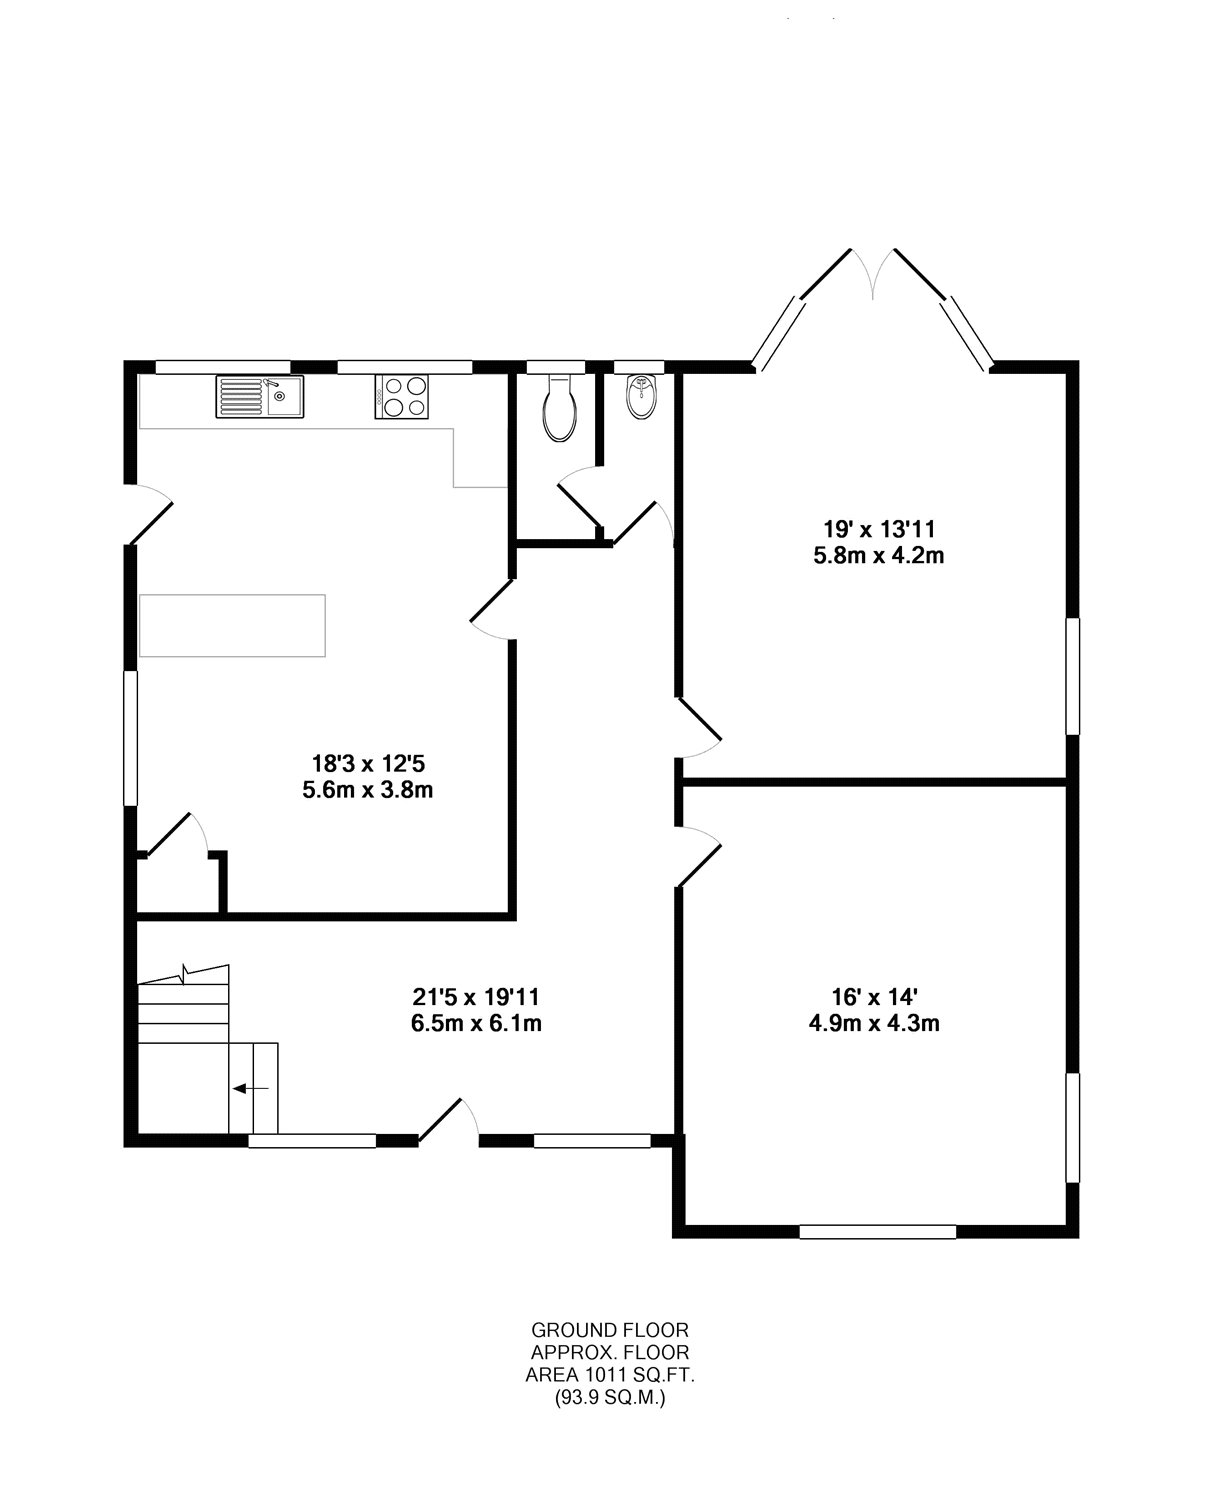 5 bed detached house for sale in coombe lane  stoke bishop